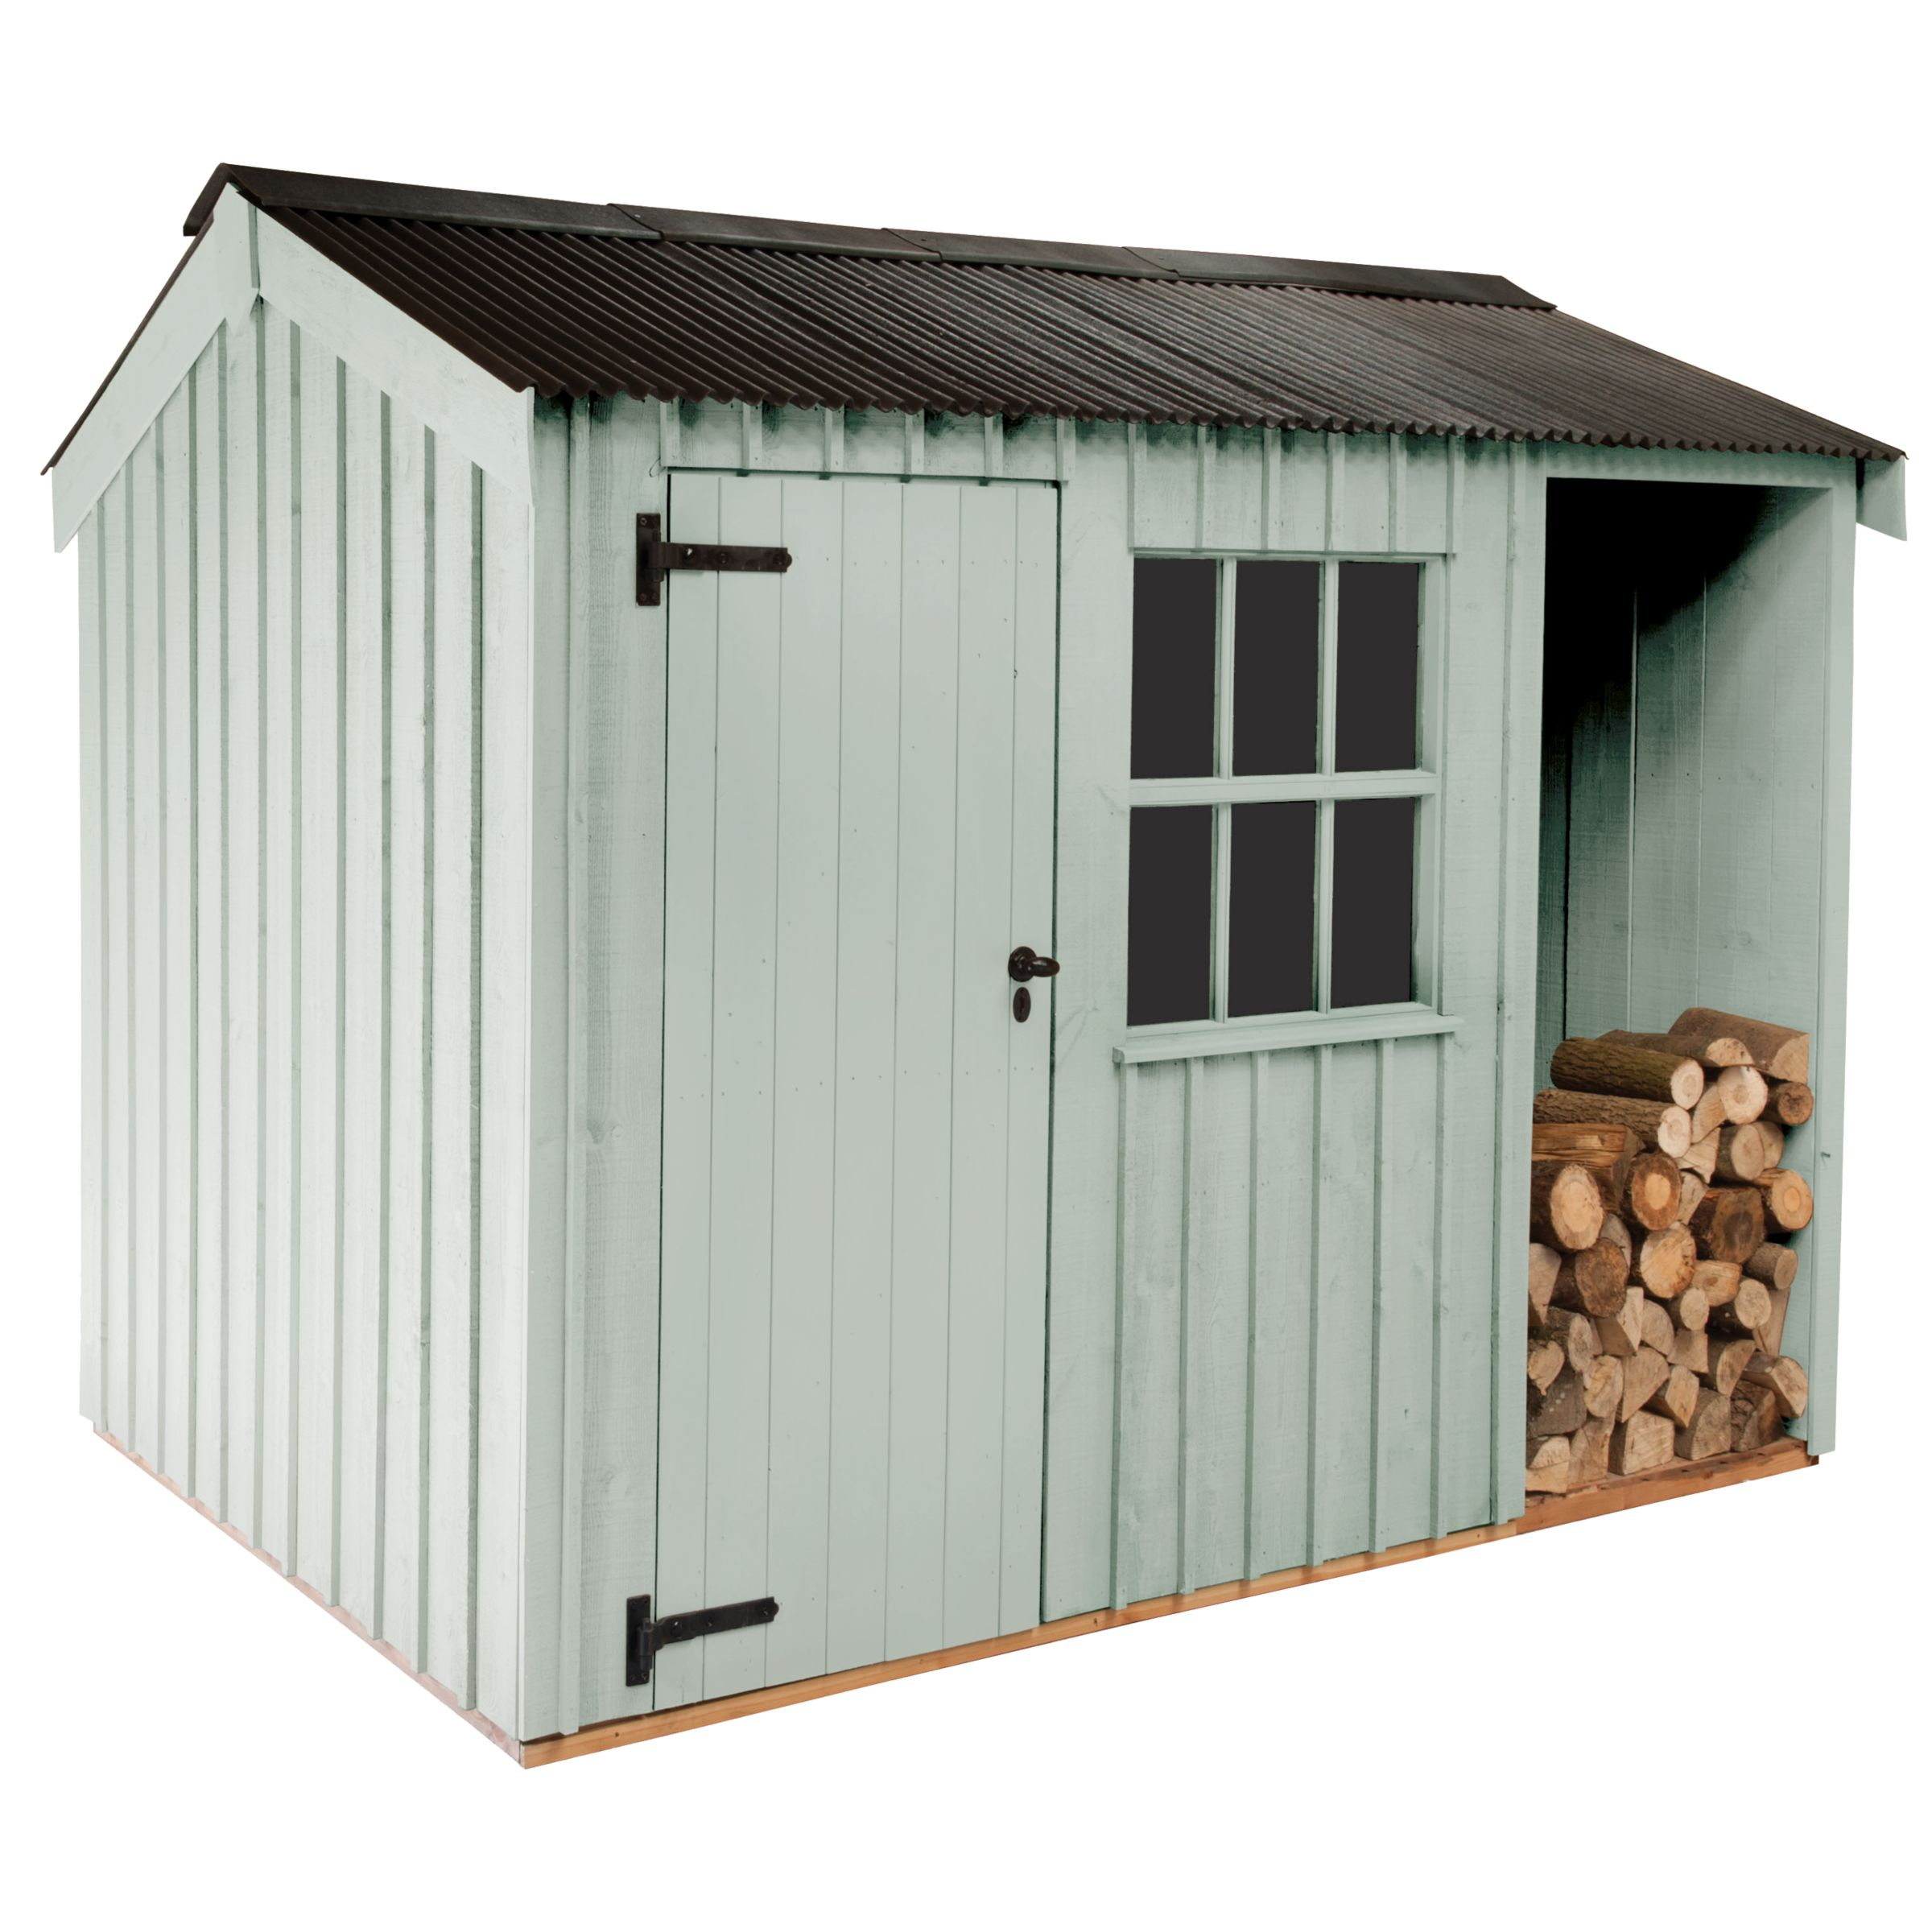 National Trust By Crane Blickling Fsc Garden Shed, 1.8x3.6m